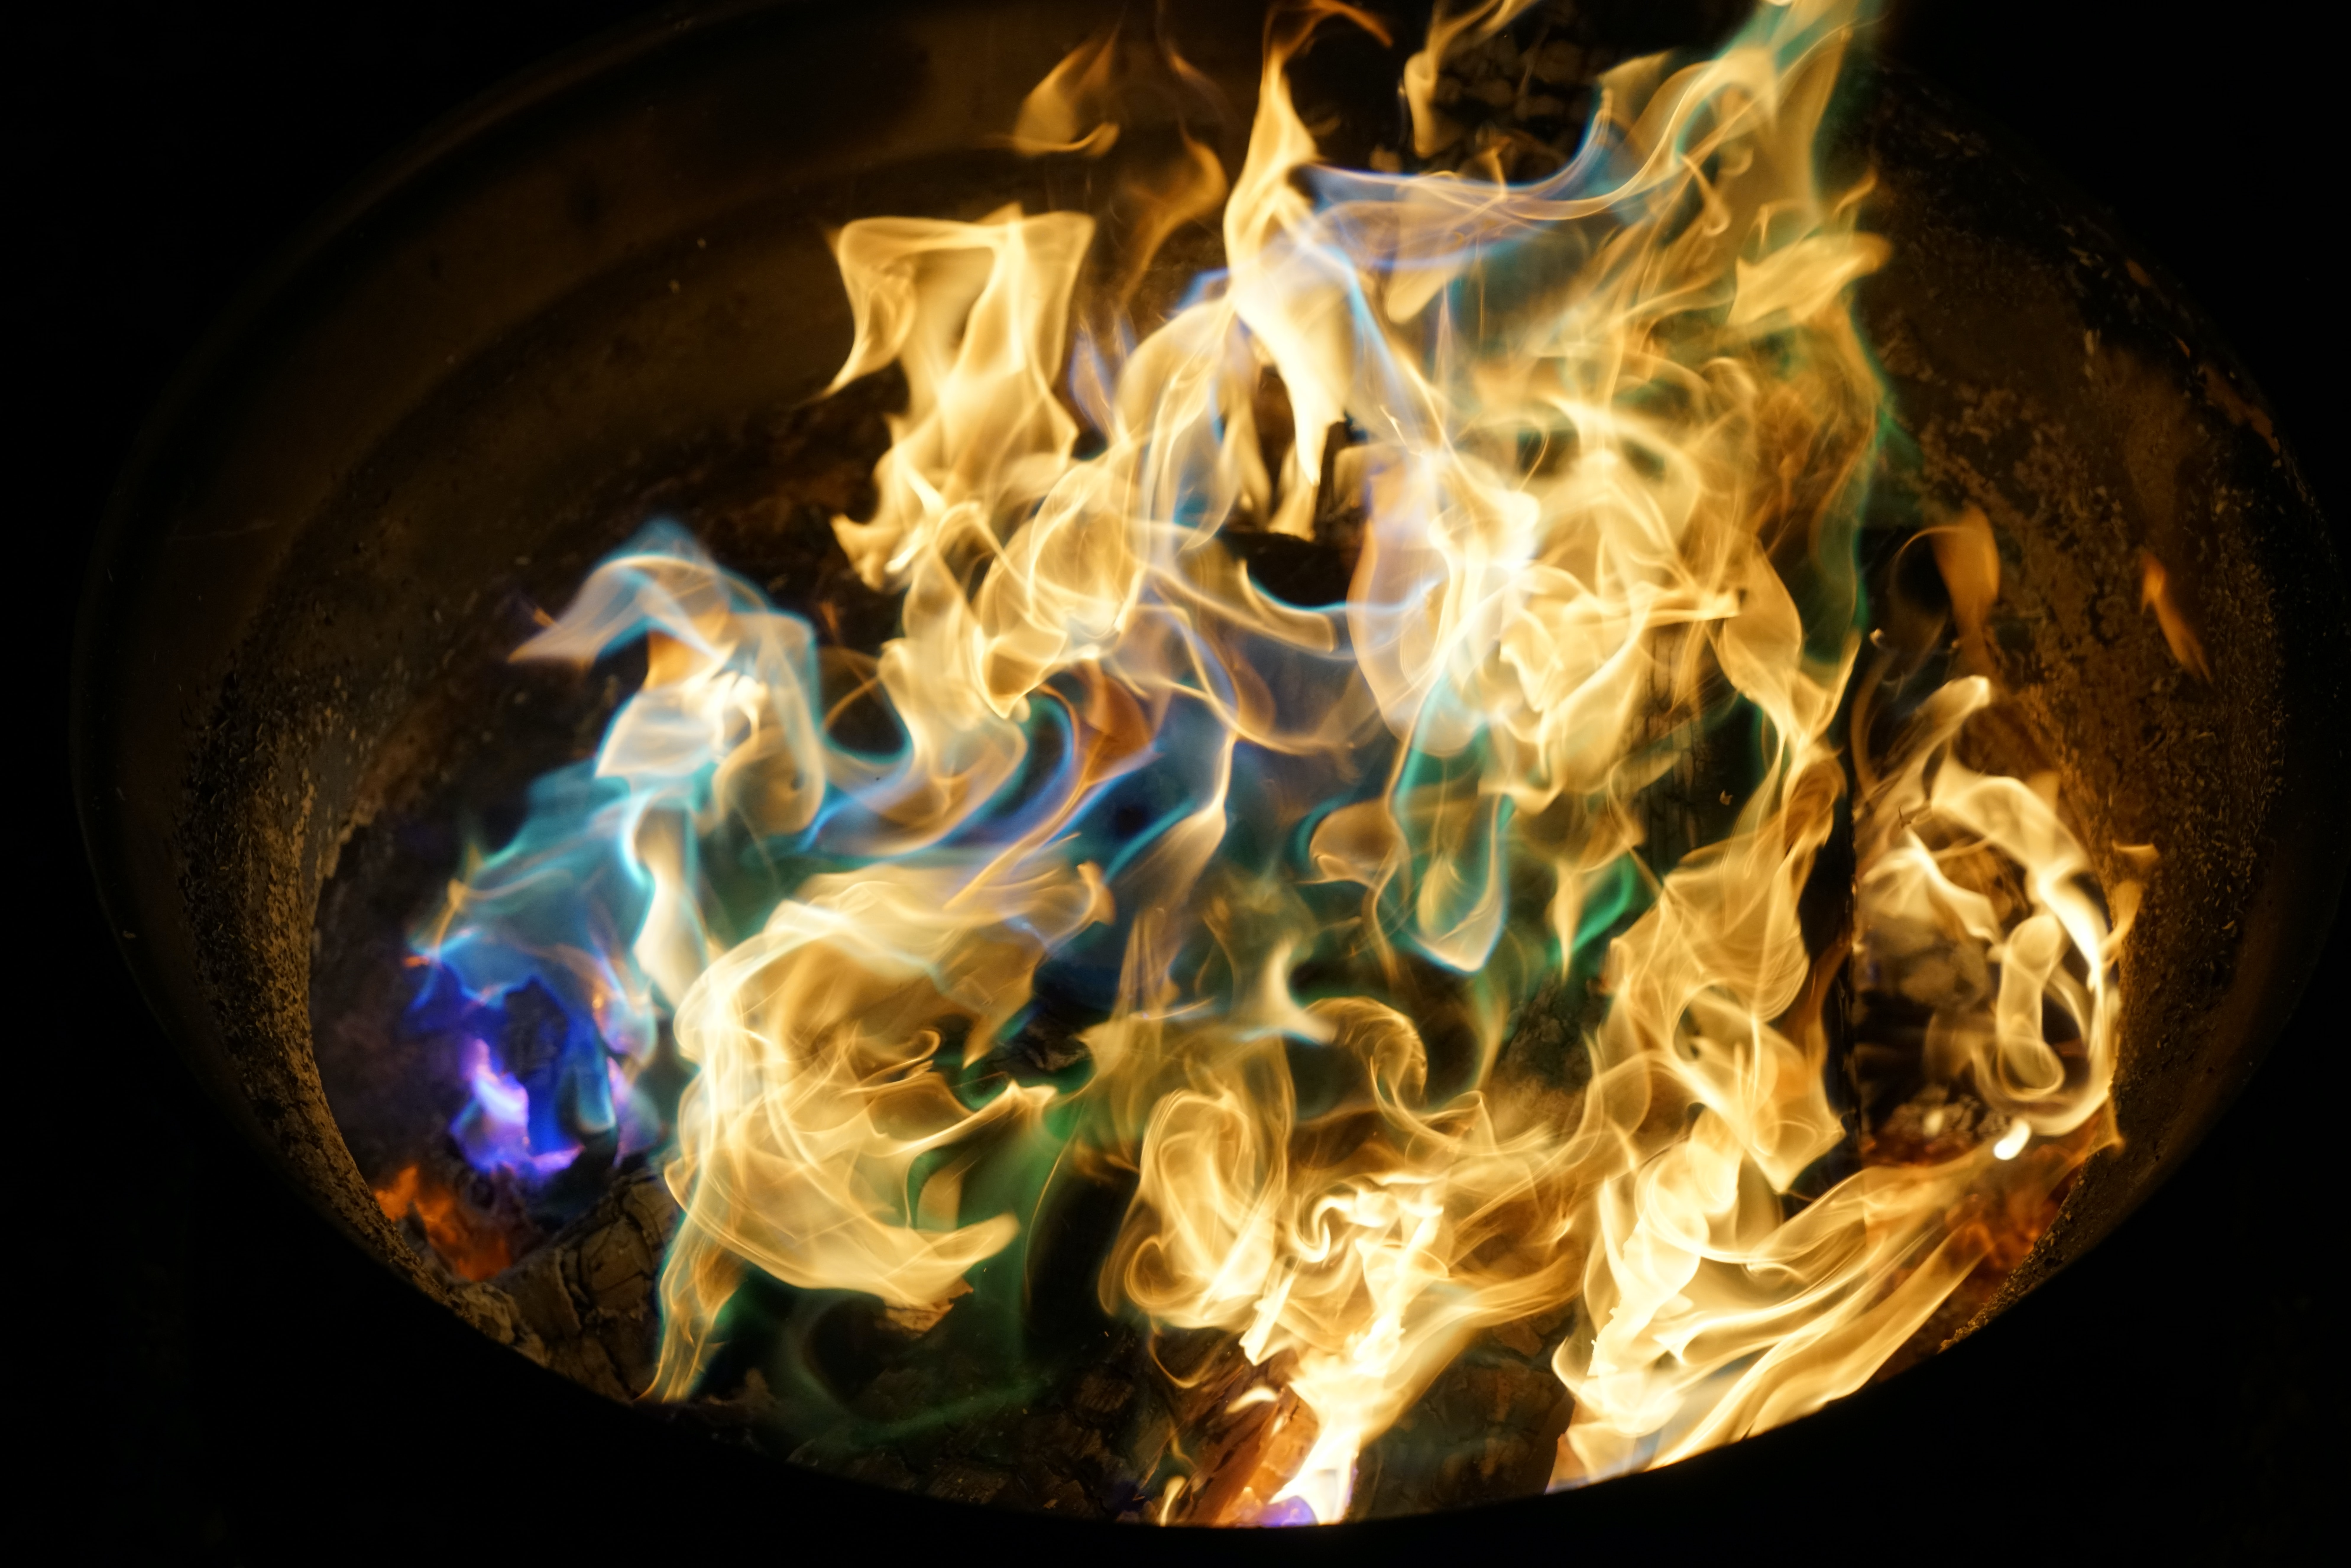 An orange fire with blue, purple, and green flames at night